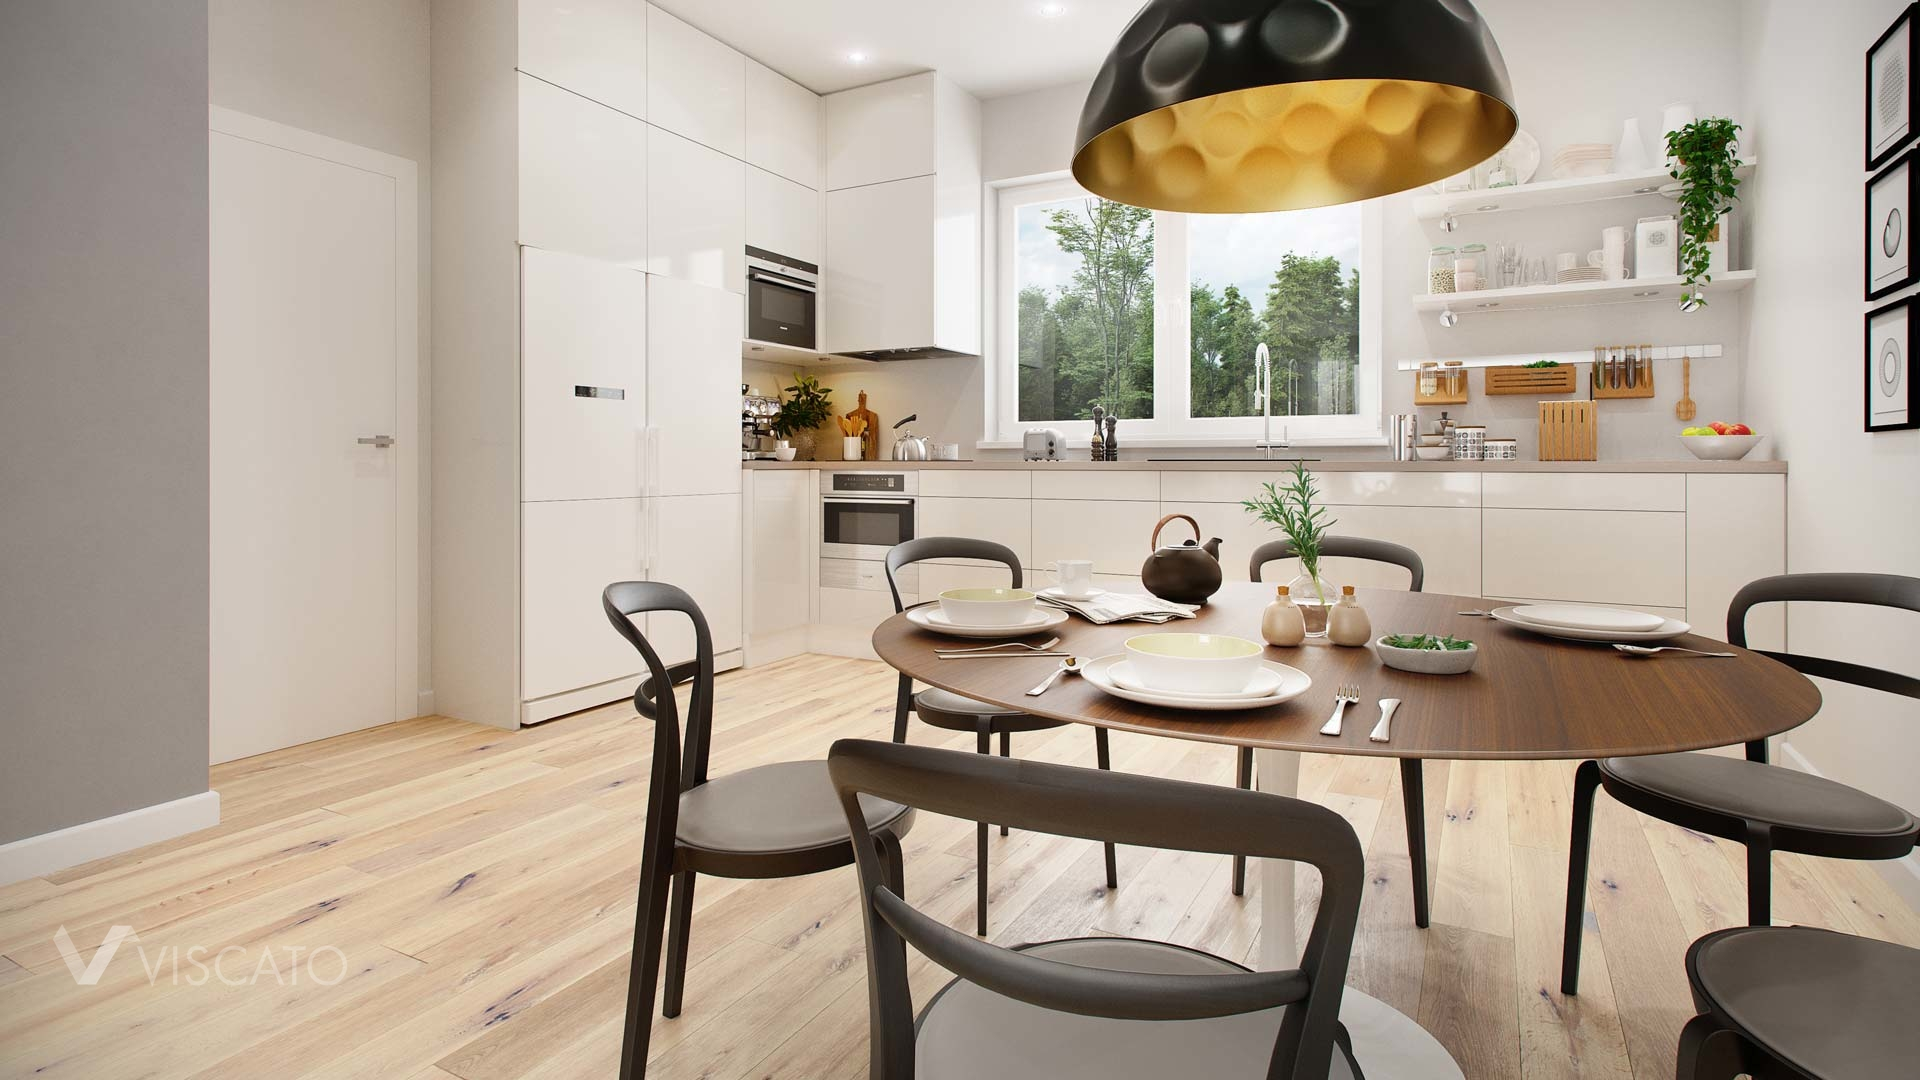 3D Design Rendering of kitchenette with stylish furniture Viscato